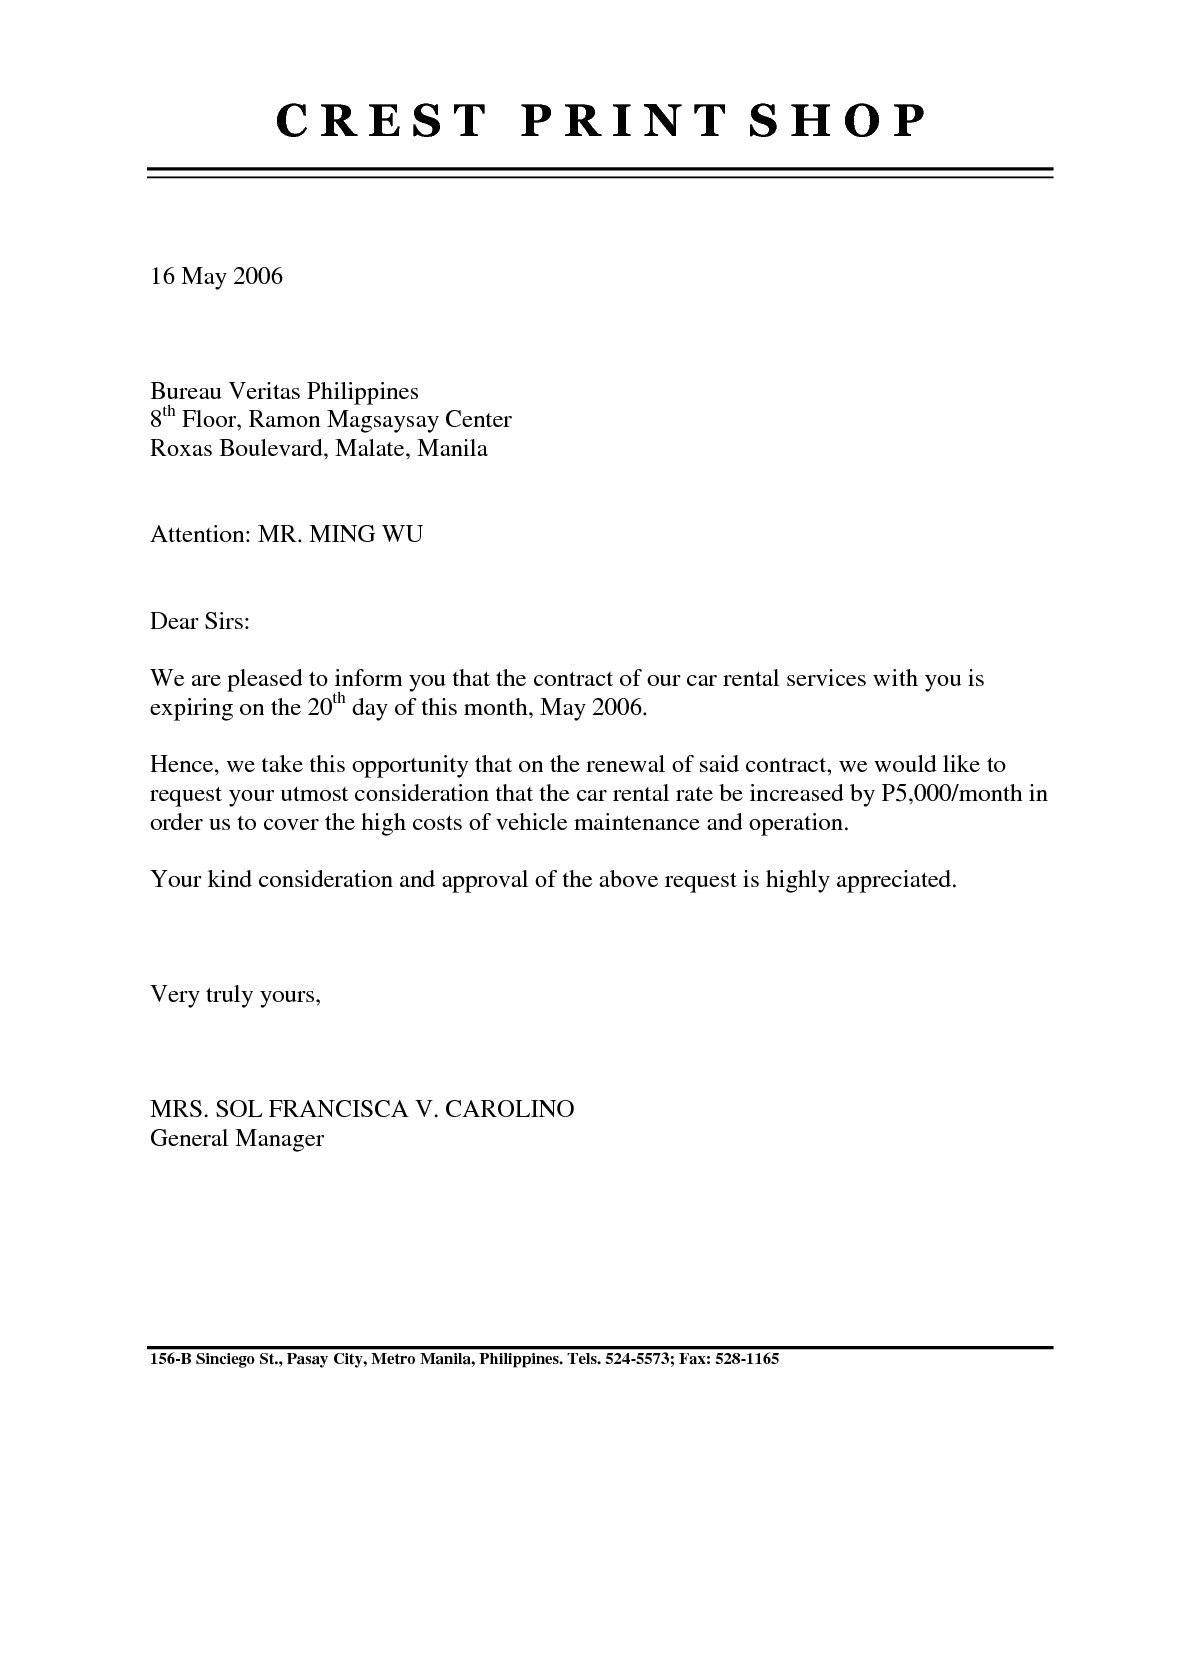 Routine Inspection Letter to Tenant Template - Tenancy Agreement Renewal Template